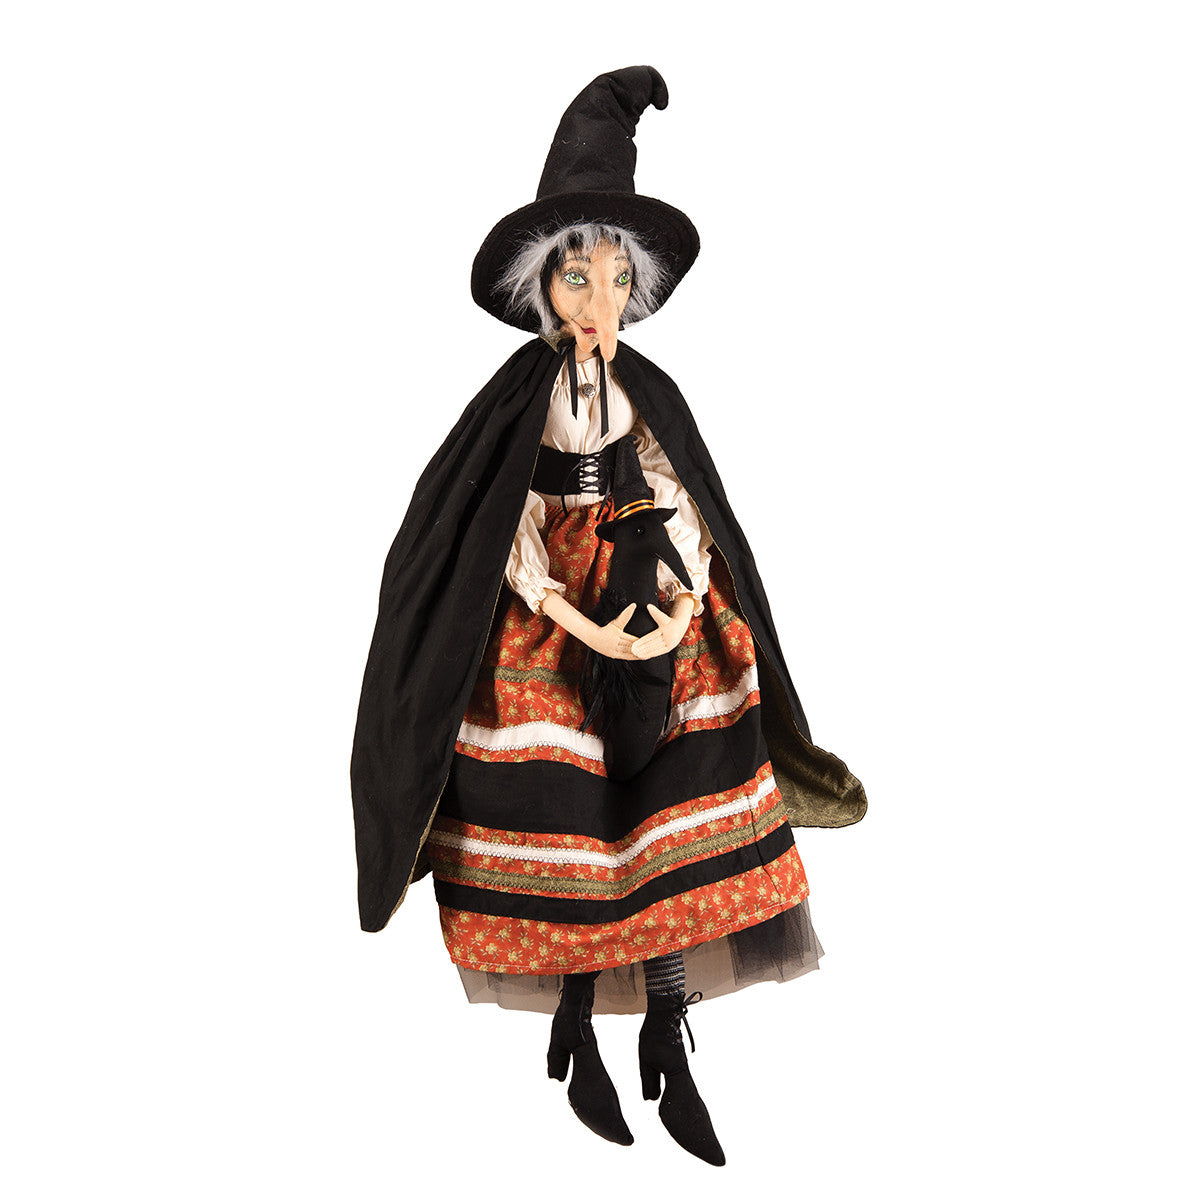 Batilda Witch with Crow - Joe Spencer Halloween Doll